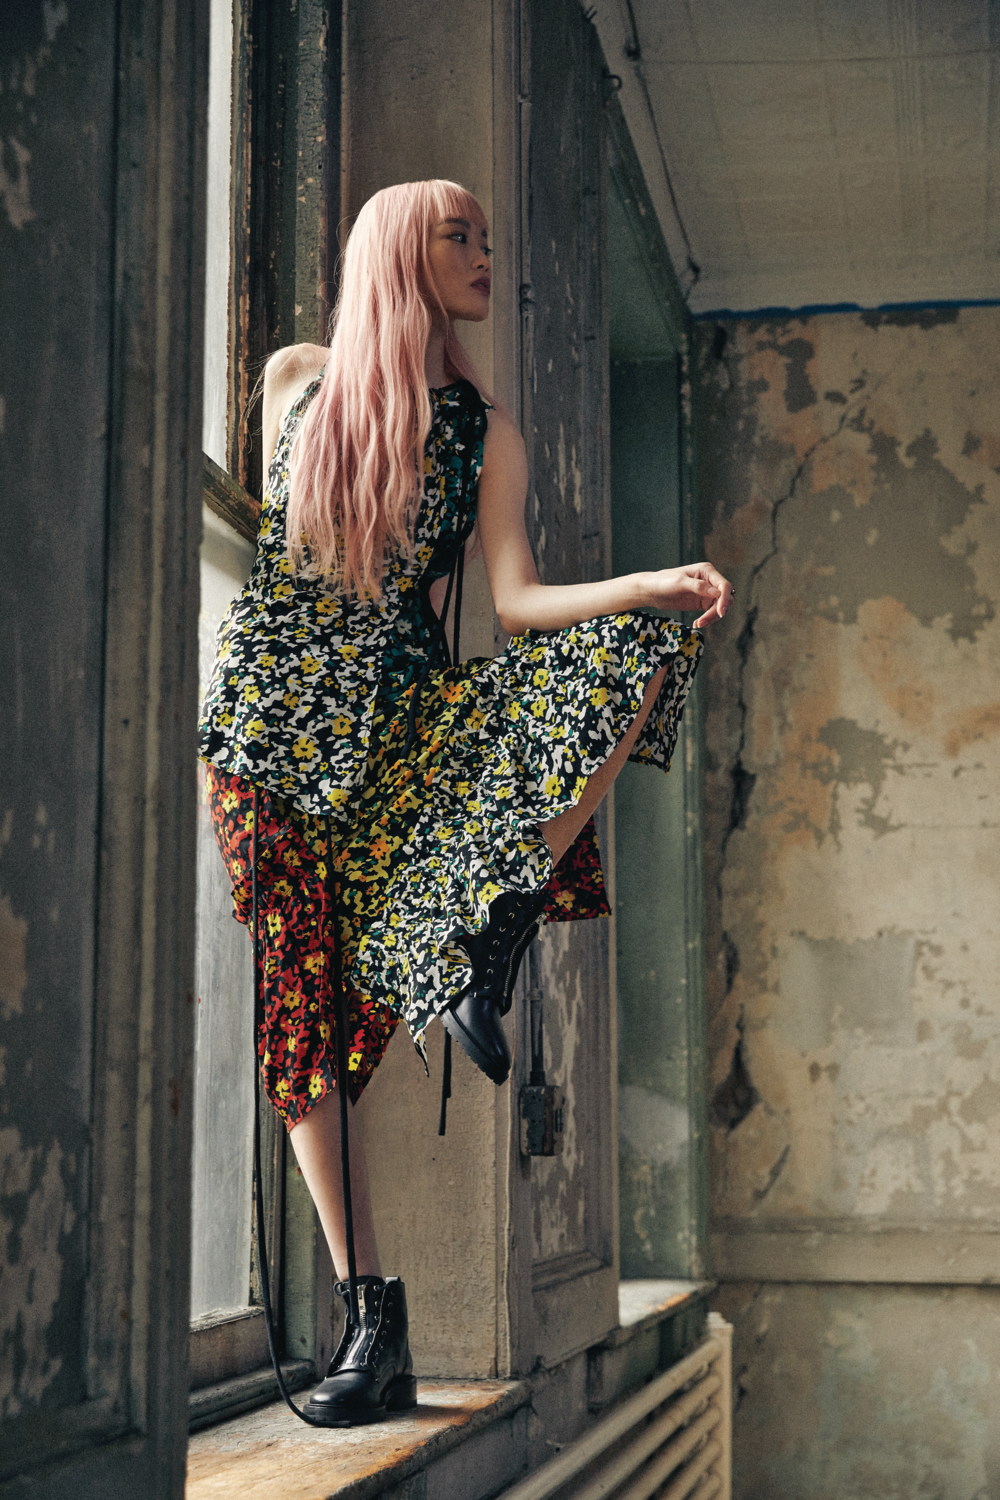 Australian Model Fernanda Ly New York Fashion Shoot